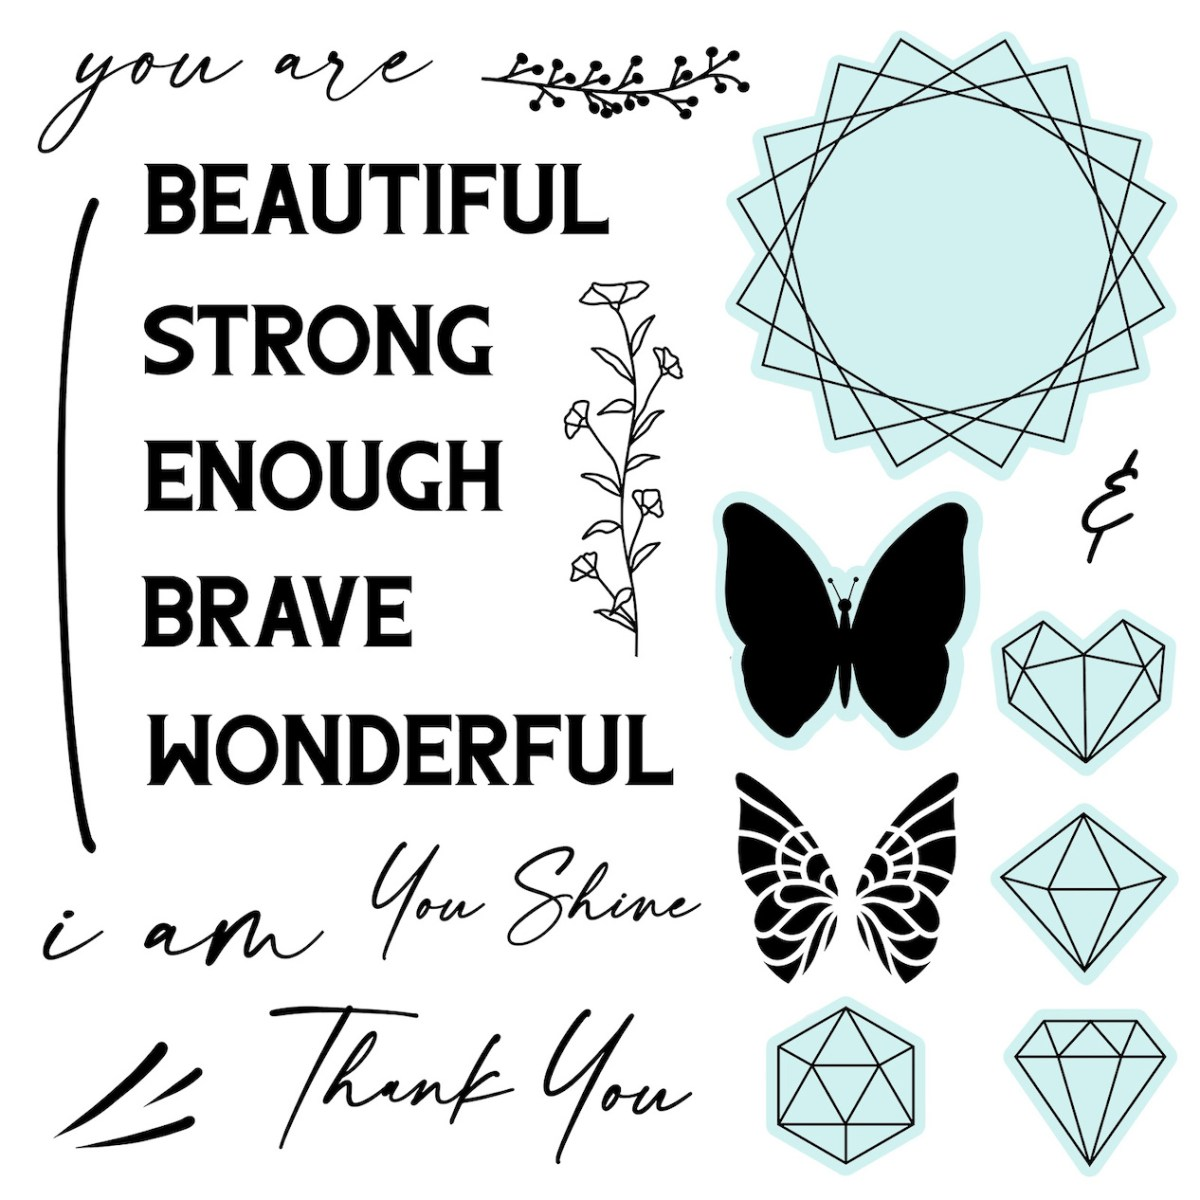 You Are Enough Paper Collection #closetomyheart #ctmh #ctmhyouareneough #ctmhnsm #ctmhnationalscrapbookingmonth #nsm #nationalscrapbookingmonth #scrapbooking #minialbum #cardmaking #papercrafting #stamping